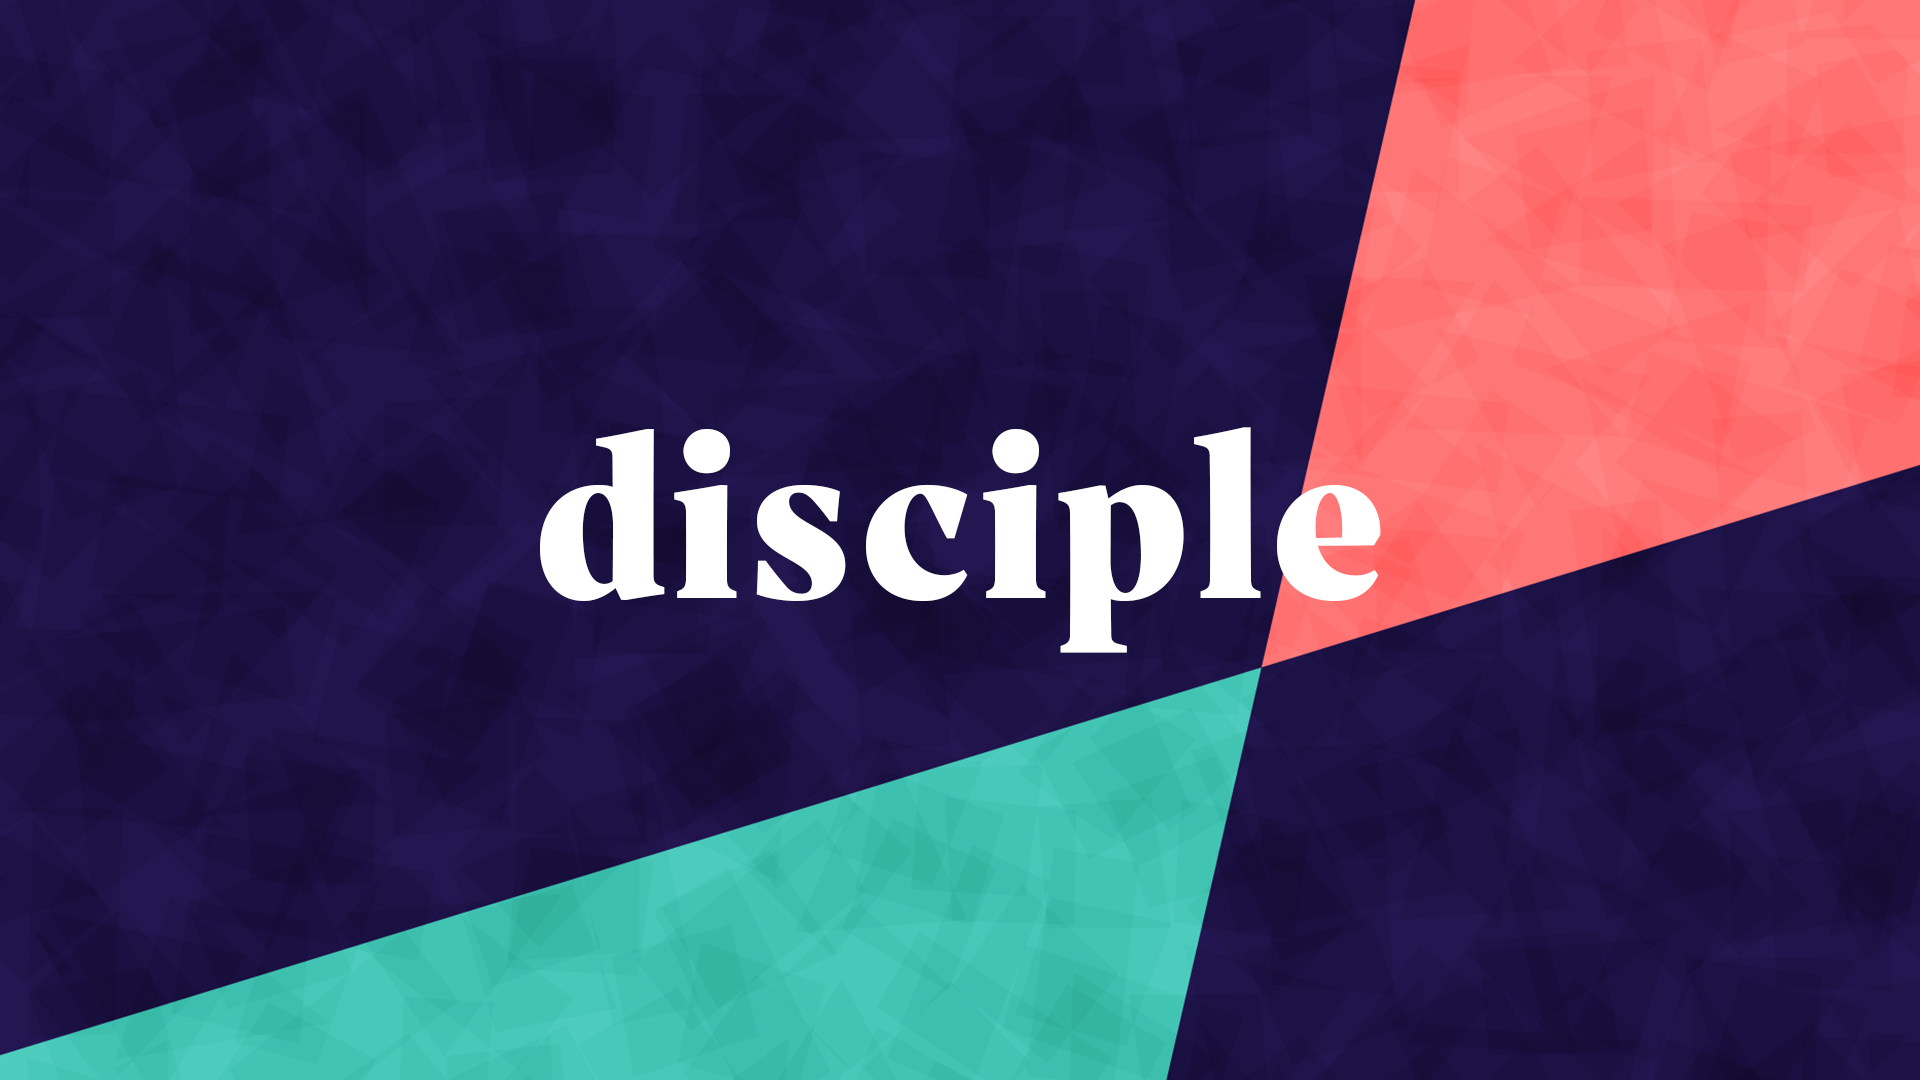 Jesus Makes Disciples